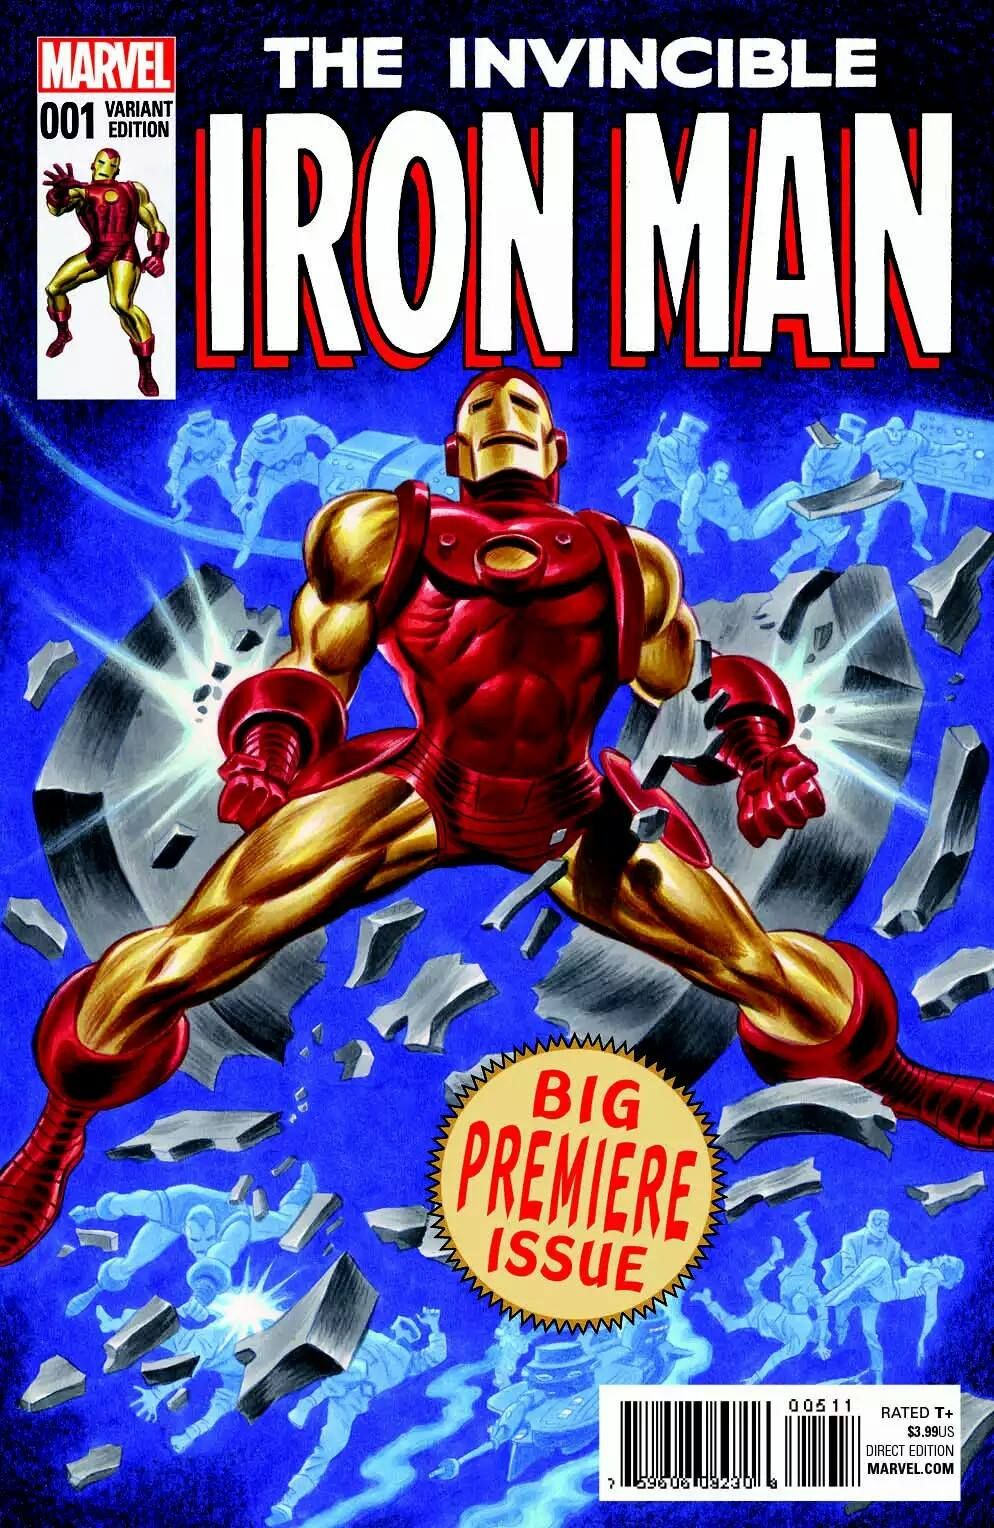 The Invincible Iron Man by Bruce Timm *